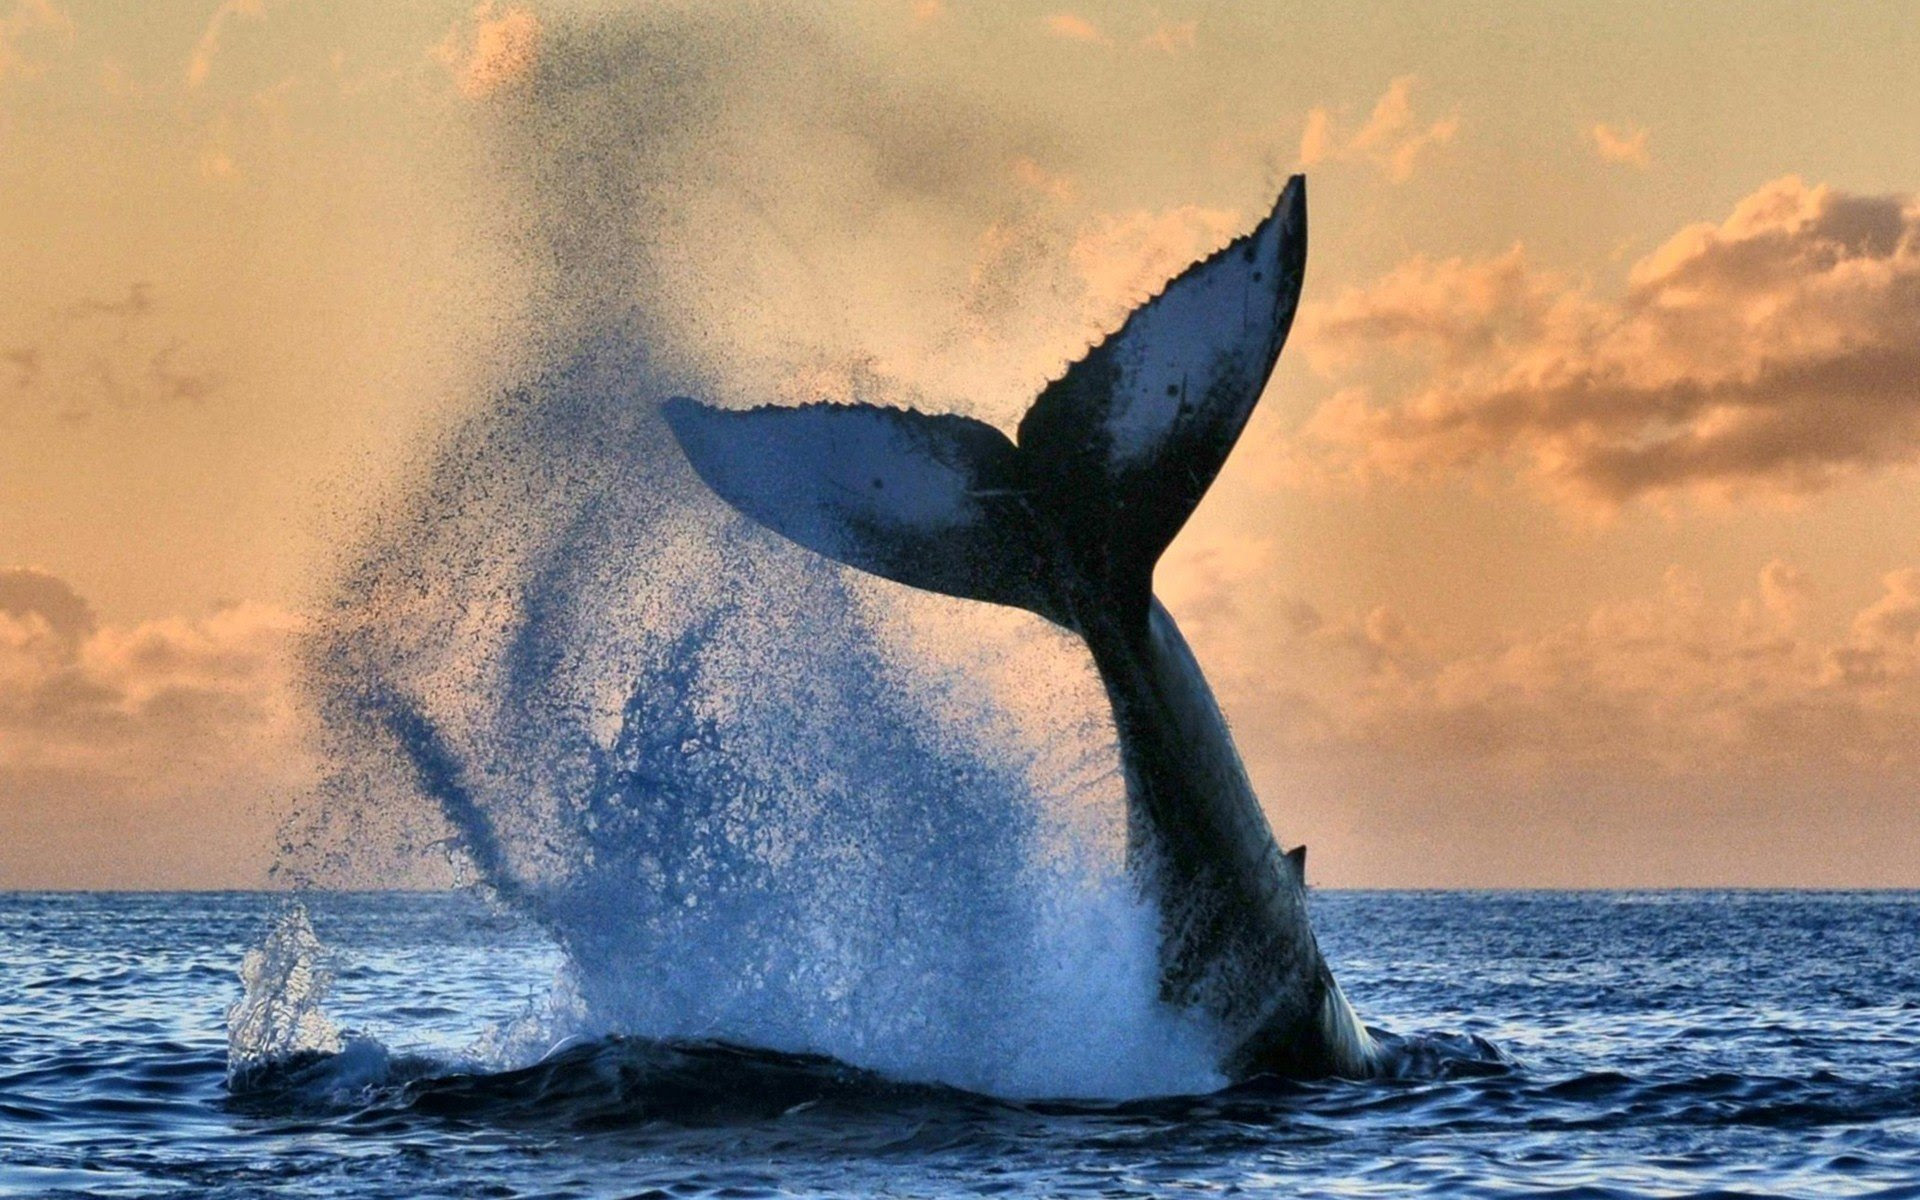 1920x1200 Px Animals Nature Sea Sky Whale High Quality Wallpapers Images, Photos, Reviews